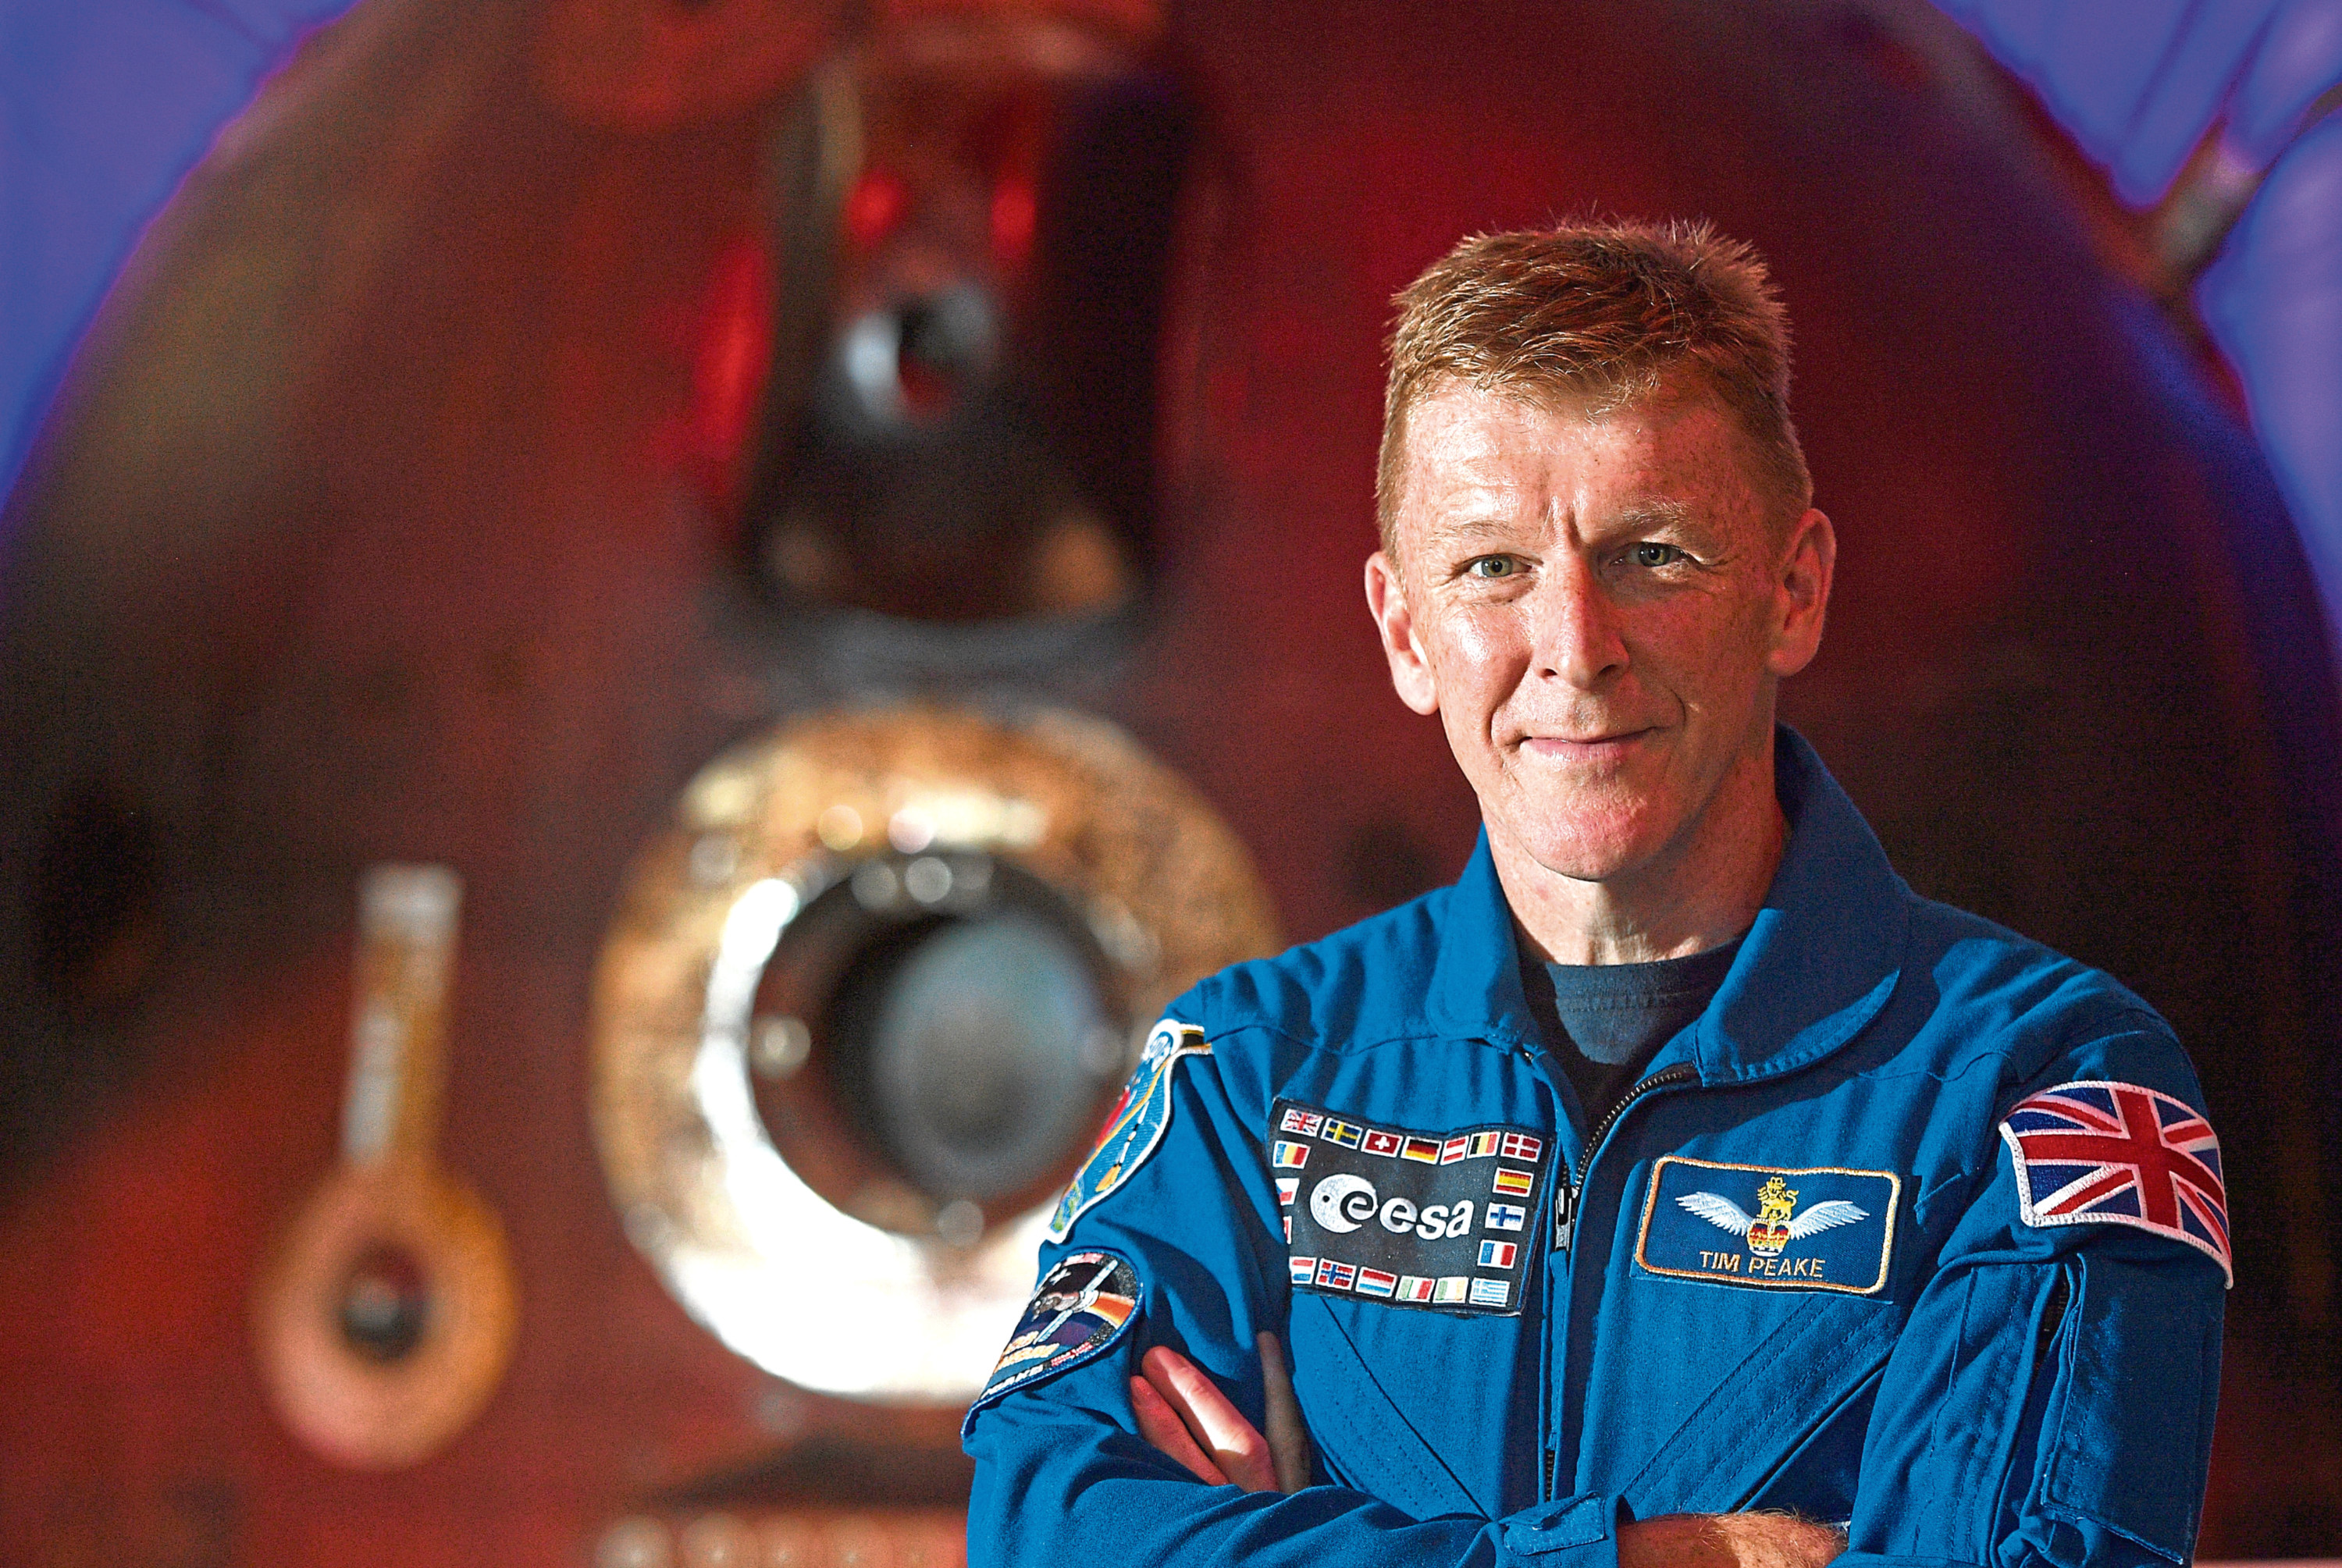 Major Tim Peake with the Soyuz descent module, the spacecraft which brought him back to Earth after his mission to the International Space Station